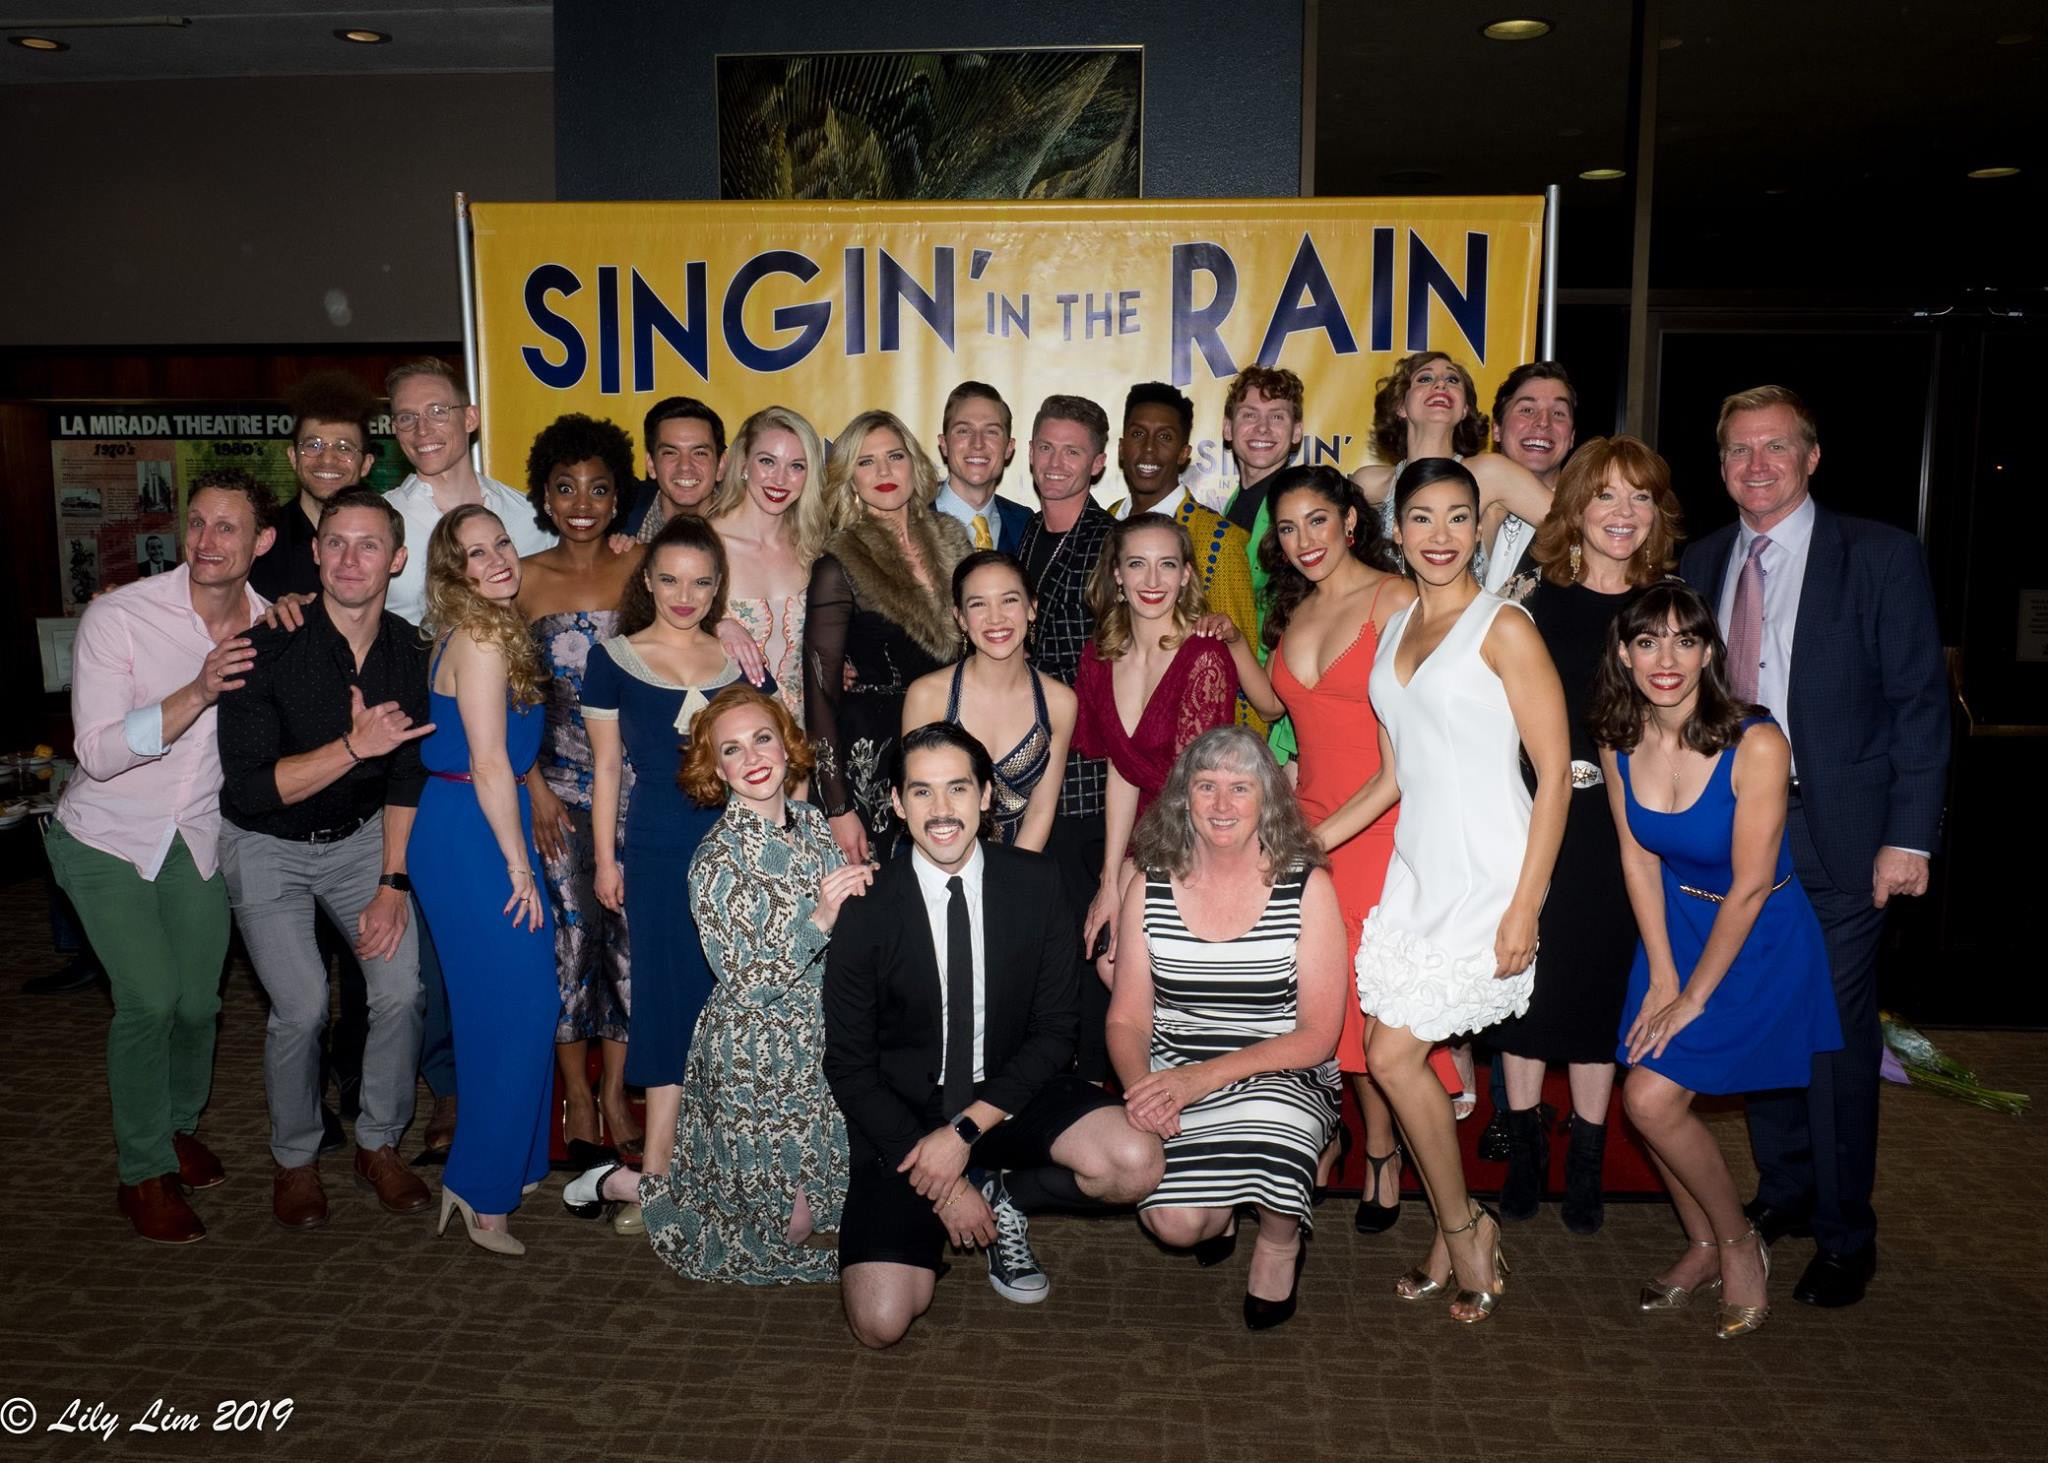 Spotlight on Theresa Murray of McCoy Rigby Entertainment's, SINGIN' IN THE RAIN